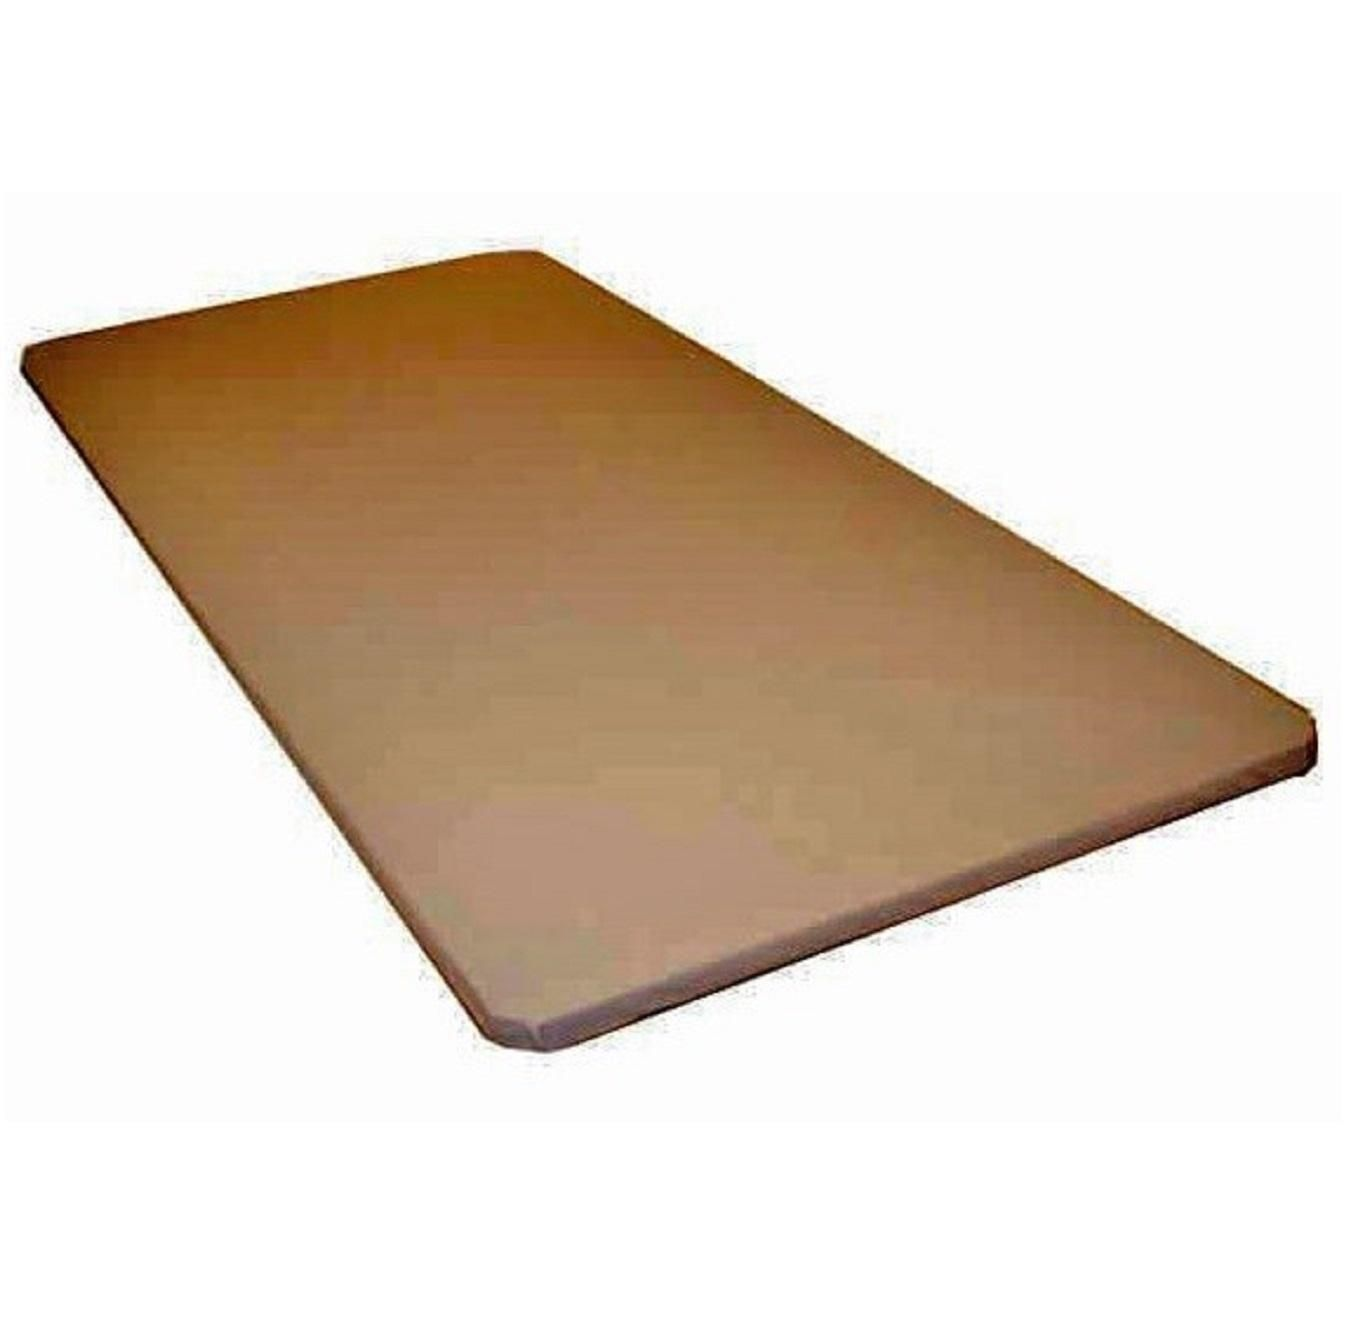 Shop For Your Hampton And Rhodes 2 Bunkie Board At Mattress Firm